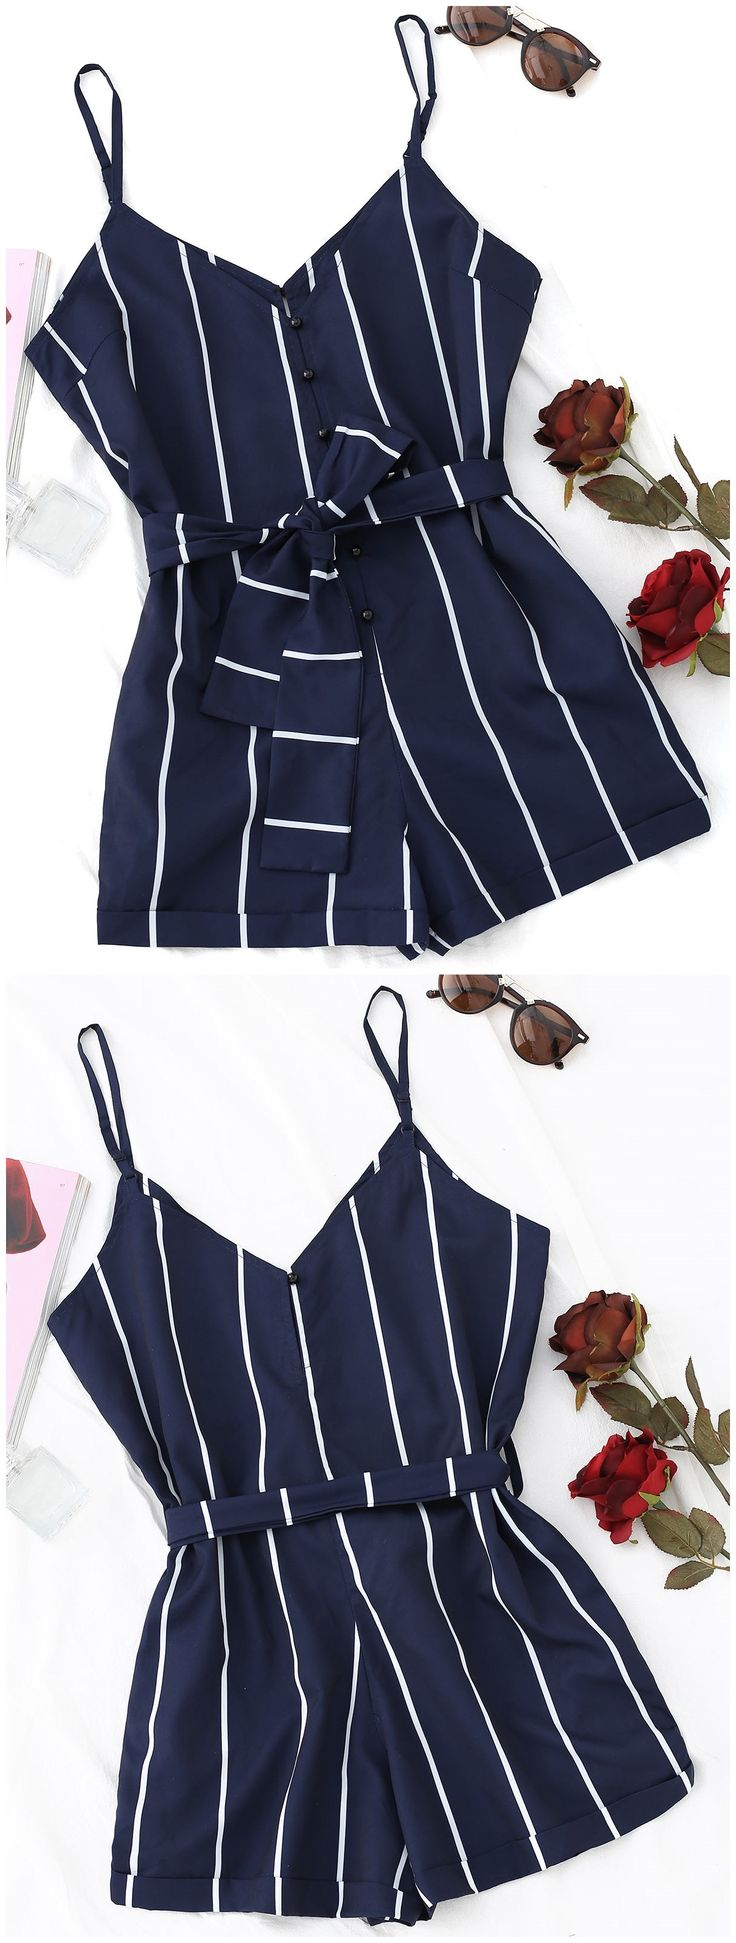 Up to 80% OFF! Striped Belted Cami Romper. #Zaful #Jumpsuits #Romper zaful,zaful outfits,zaful dresses,spring outfits,summer dresses,Valentine's Day,valentines day ideas,valentines outfits,cute,casual,classy,fashion,style,bottoms,shorts,jumpsuits,rompers,playsuits,playsuit outfit,dressy jumpsuits,playsuits two piece,two piece outfits,two piece dresses,dresses,printed dresses,sundresses,long sleeve dresses,mini dresses,maxi dresses,lace dress,bohemian dresses @zaful Extra 10% OFF Code:ZF2017